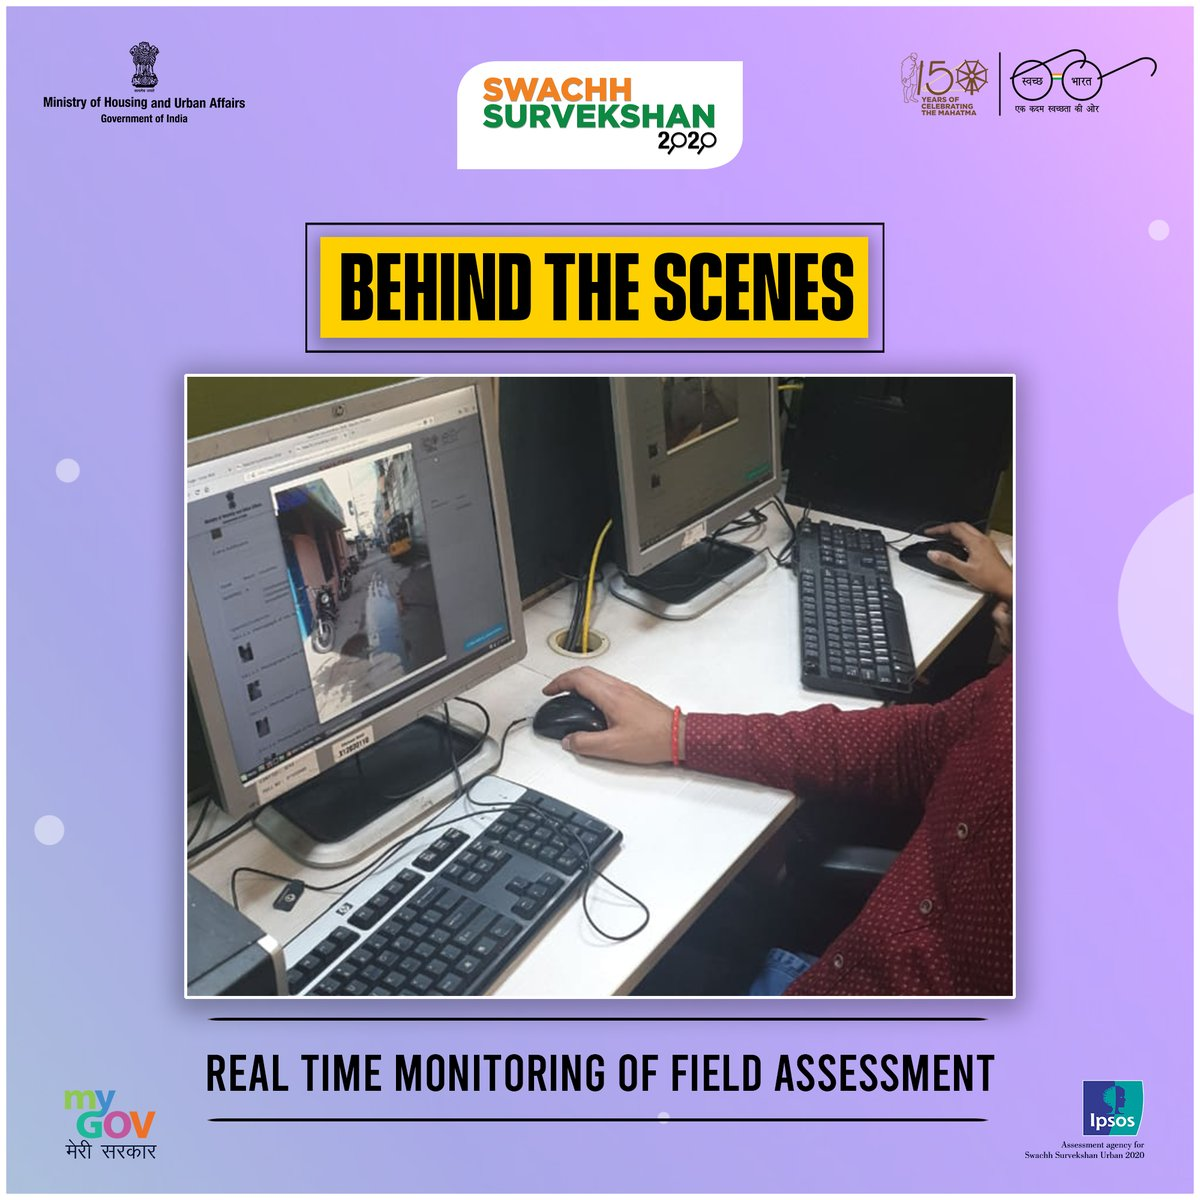 Take a peak #BehindTheScenes of #SwachhSurvekshan2020.  Real time monitoring of the field assessment from our project office. Accountability and transparency has always been our motto!  #SwachhBharat #BTS https://t.co/q4c1IpnDRH